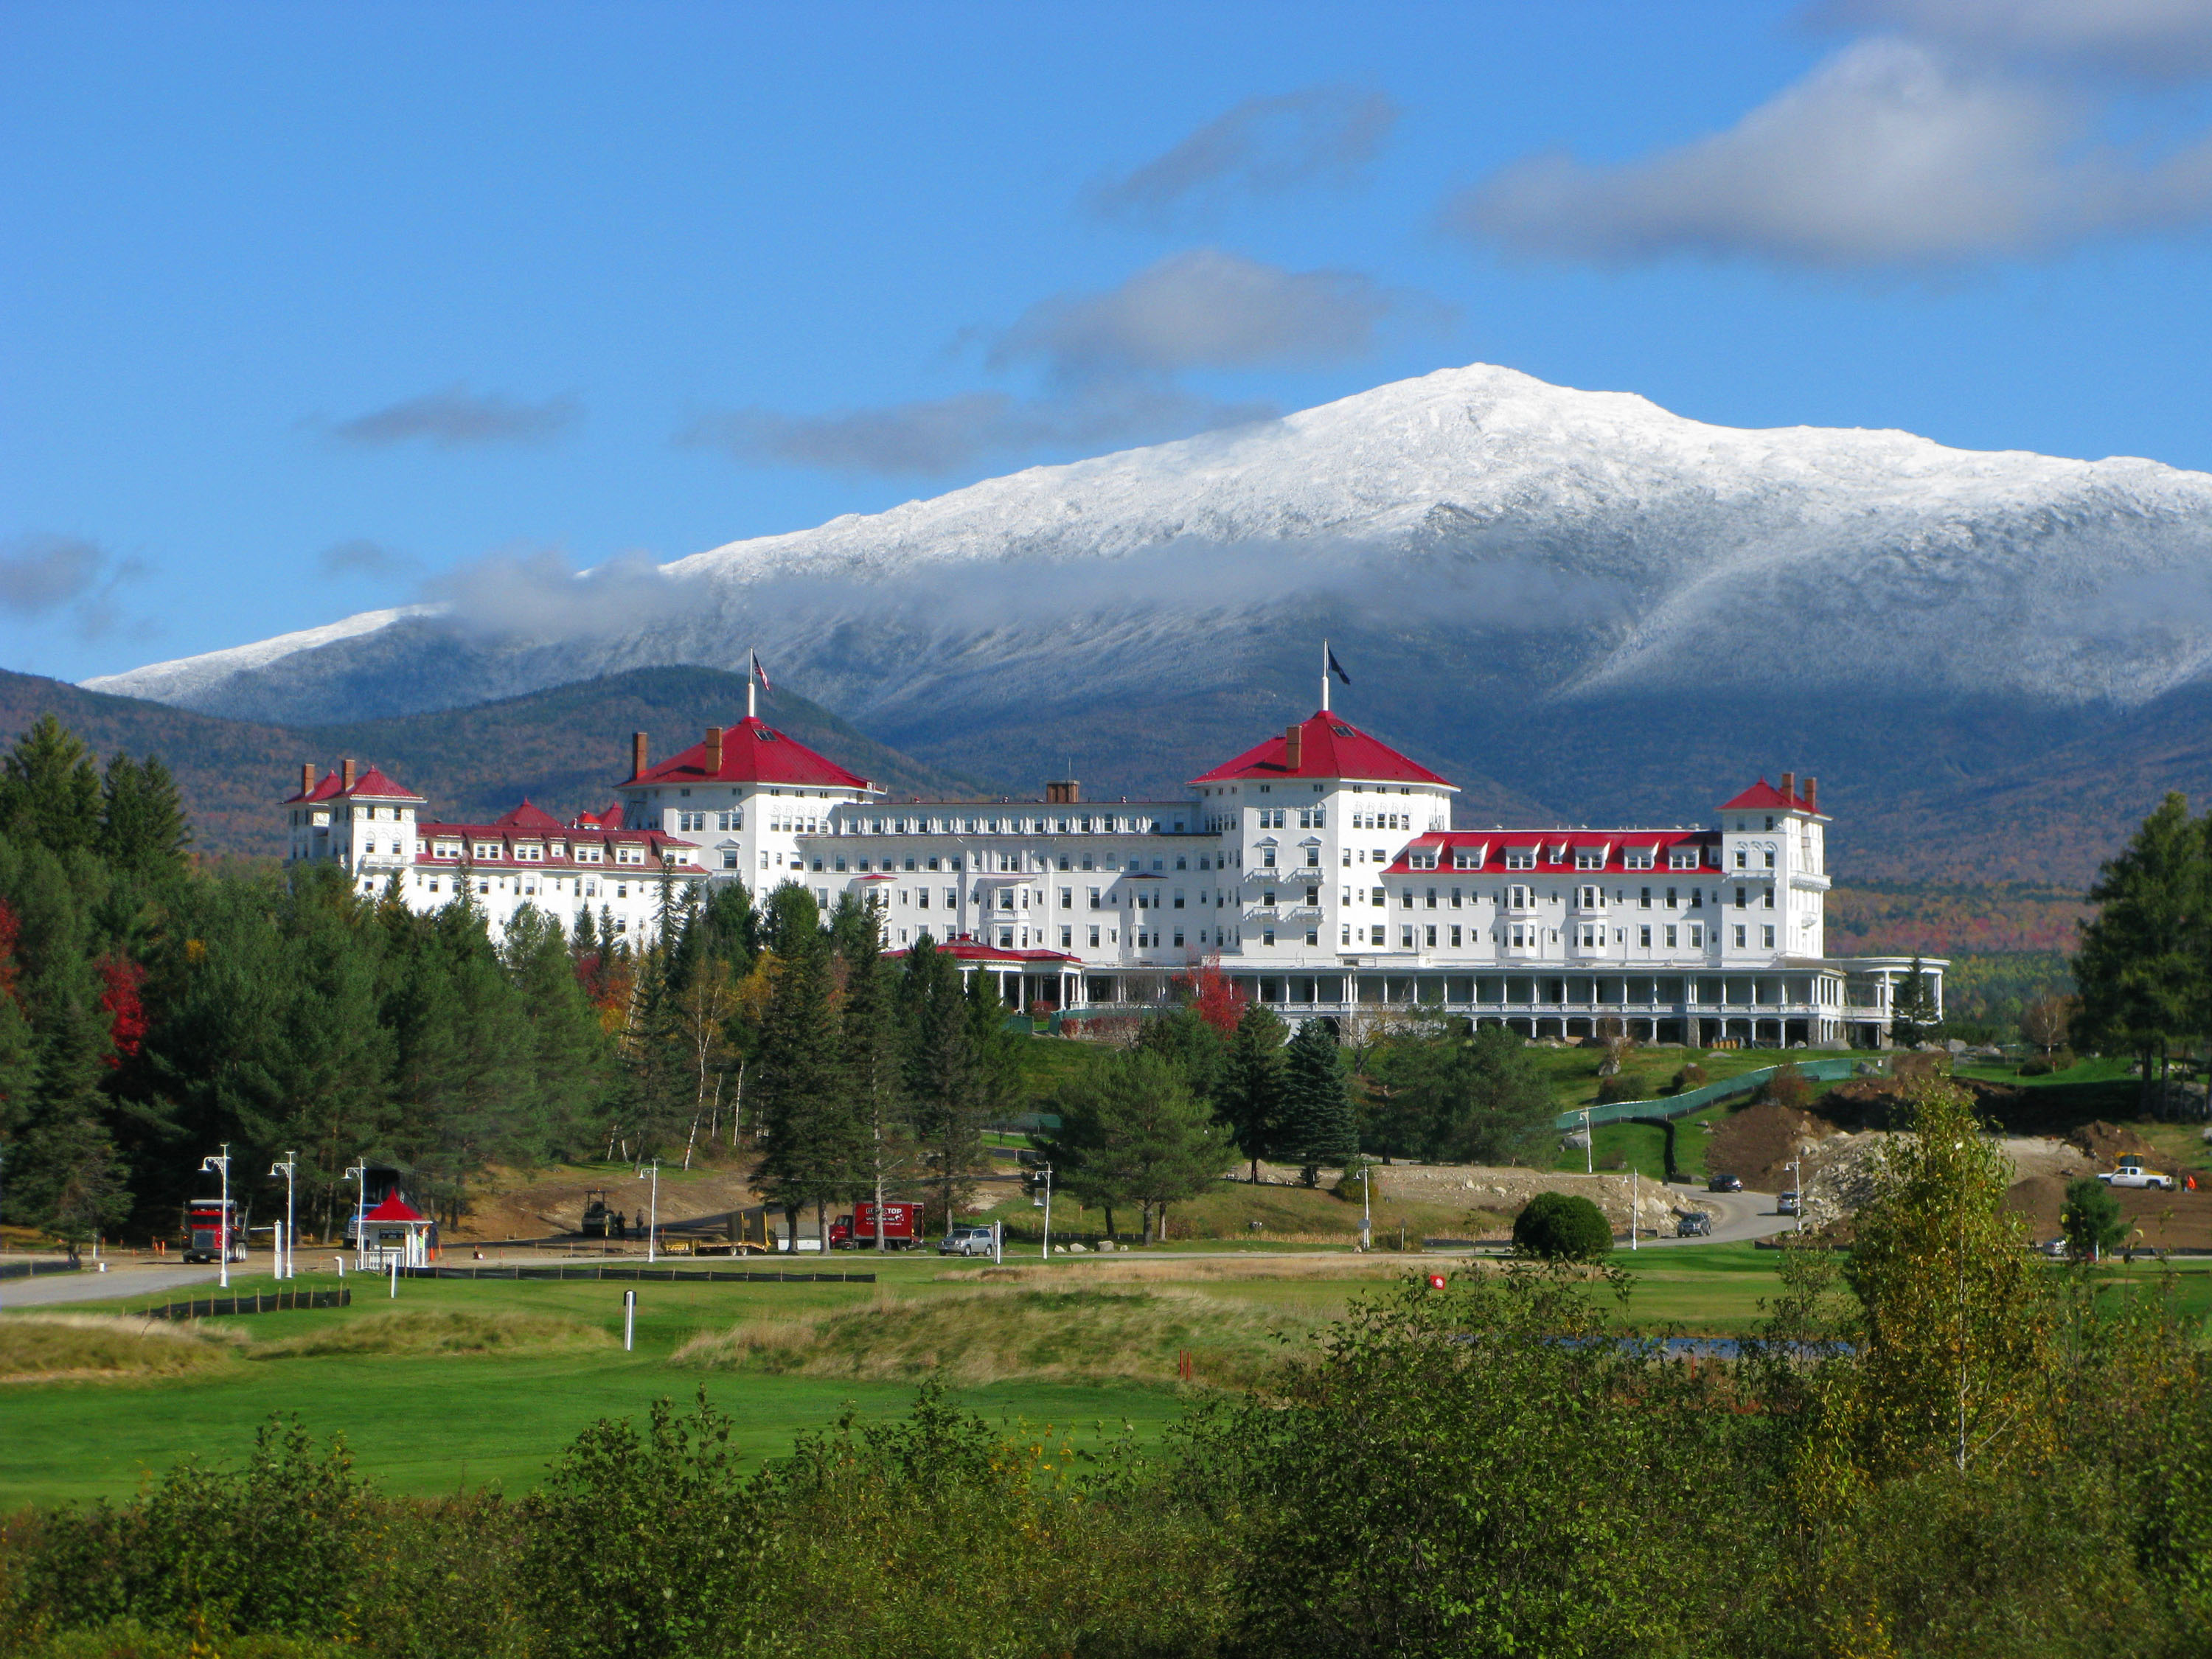 Omni Mt. Washington Resort